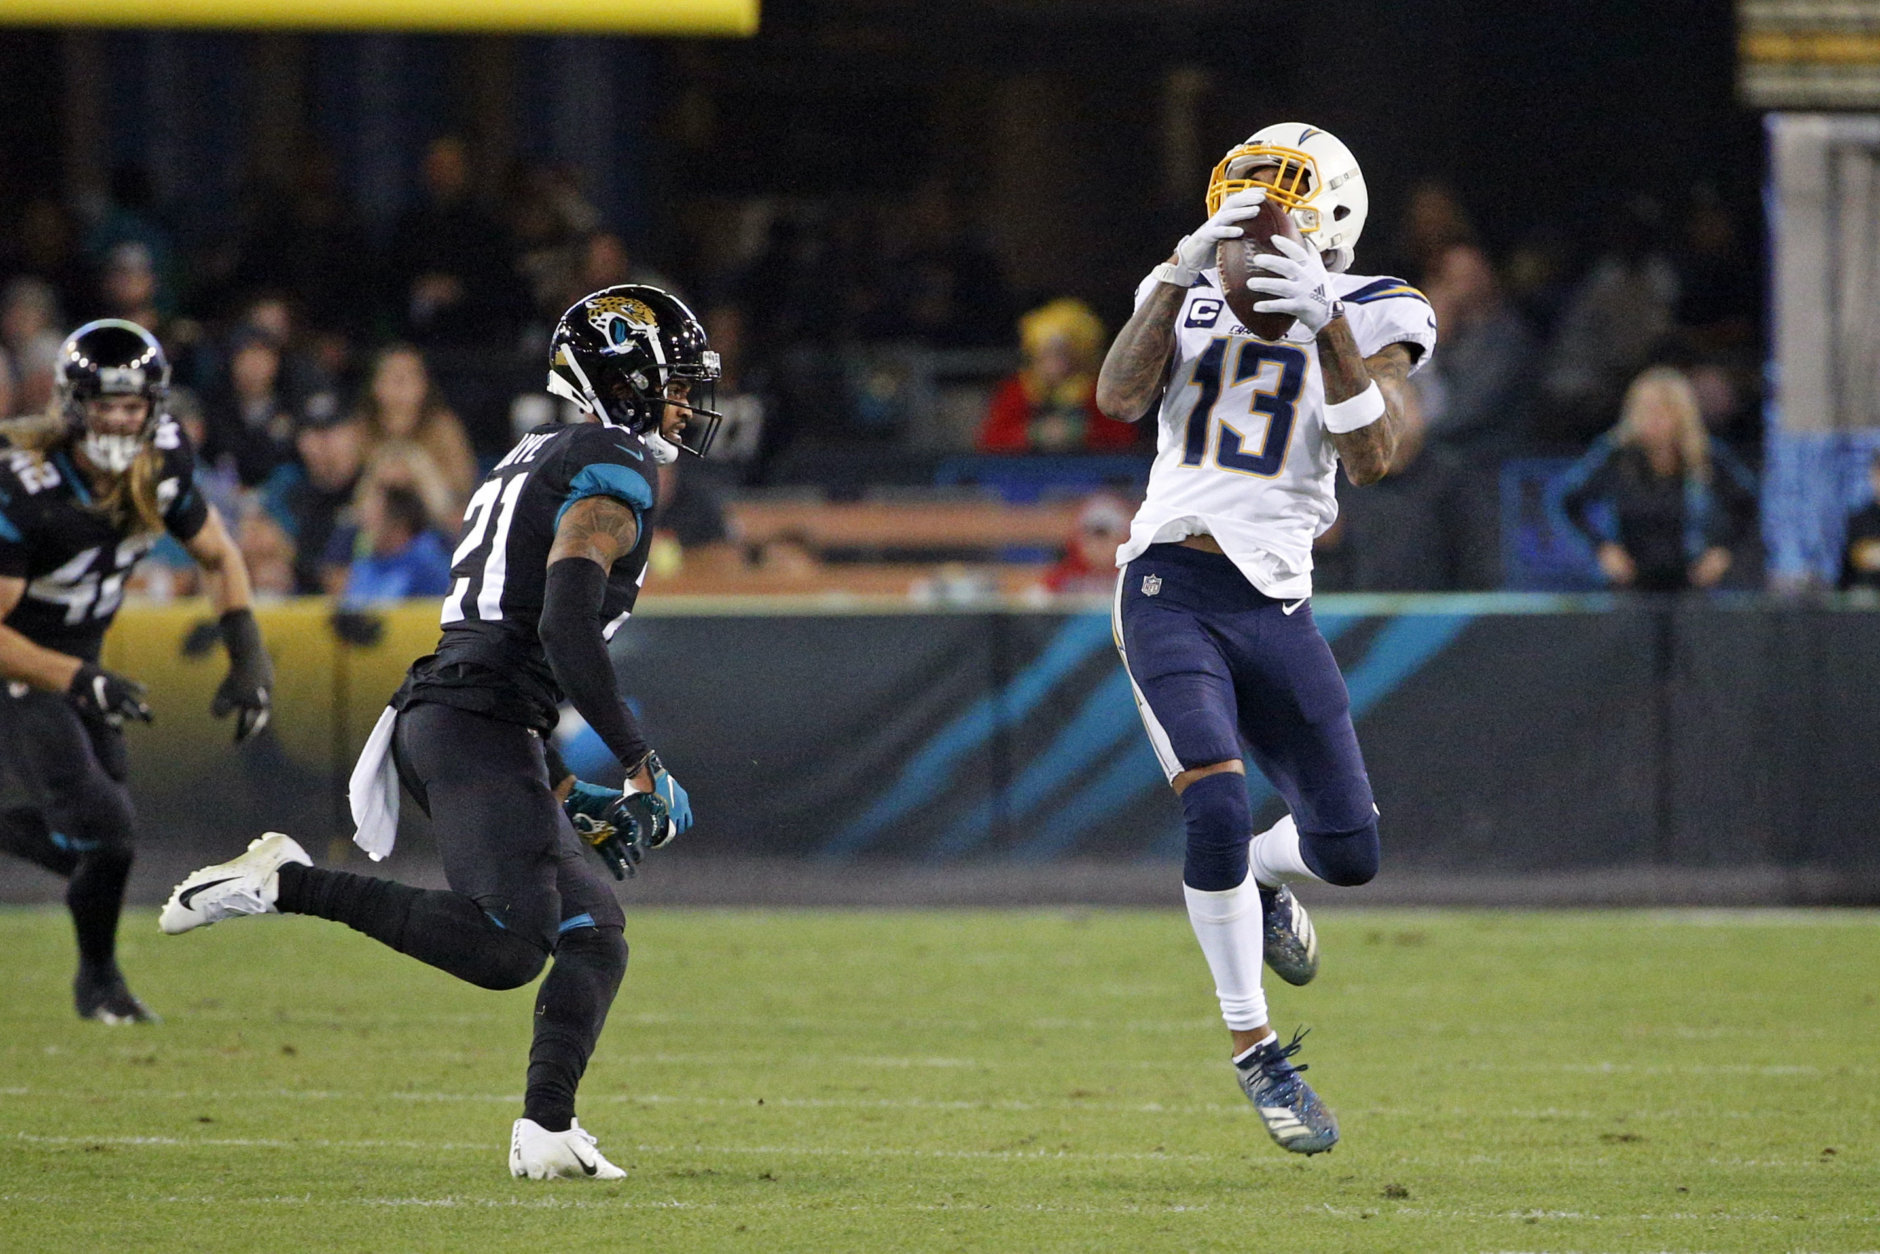 """<p><b><i>Chargers 45</i></b><br /> <b><i>Jaguars 10</i></b></p> <p>So how do you shake free of an <a href=""""https://profootballtalk.nbcsports.com/2019/12/02/chargers-getting-frustrated-as-they-find-every-way-you-can-possibly-lose/"""" target=""""_blank"""" rel=""""noopener"""">epic run of late-game failures in close defeats</a>? Blow out a listless Jacksonville team <a href=""""https://profootballtalk.nbcsports.com/2019/12/02/two-expensive-misses-one-cheap-hit-for-jaguars-at-quarterback/"""" target=""""_blank"""" rel=""""noopener"""">incapable of making a good choice at QB</a>, of course!</p>"""